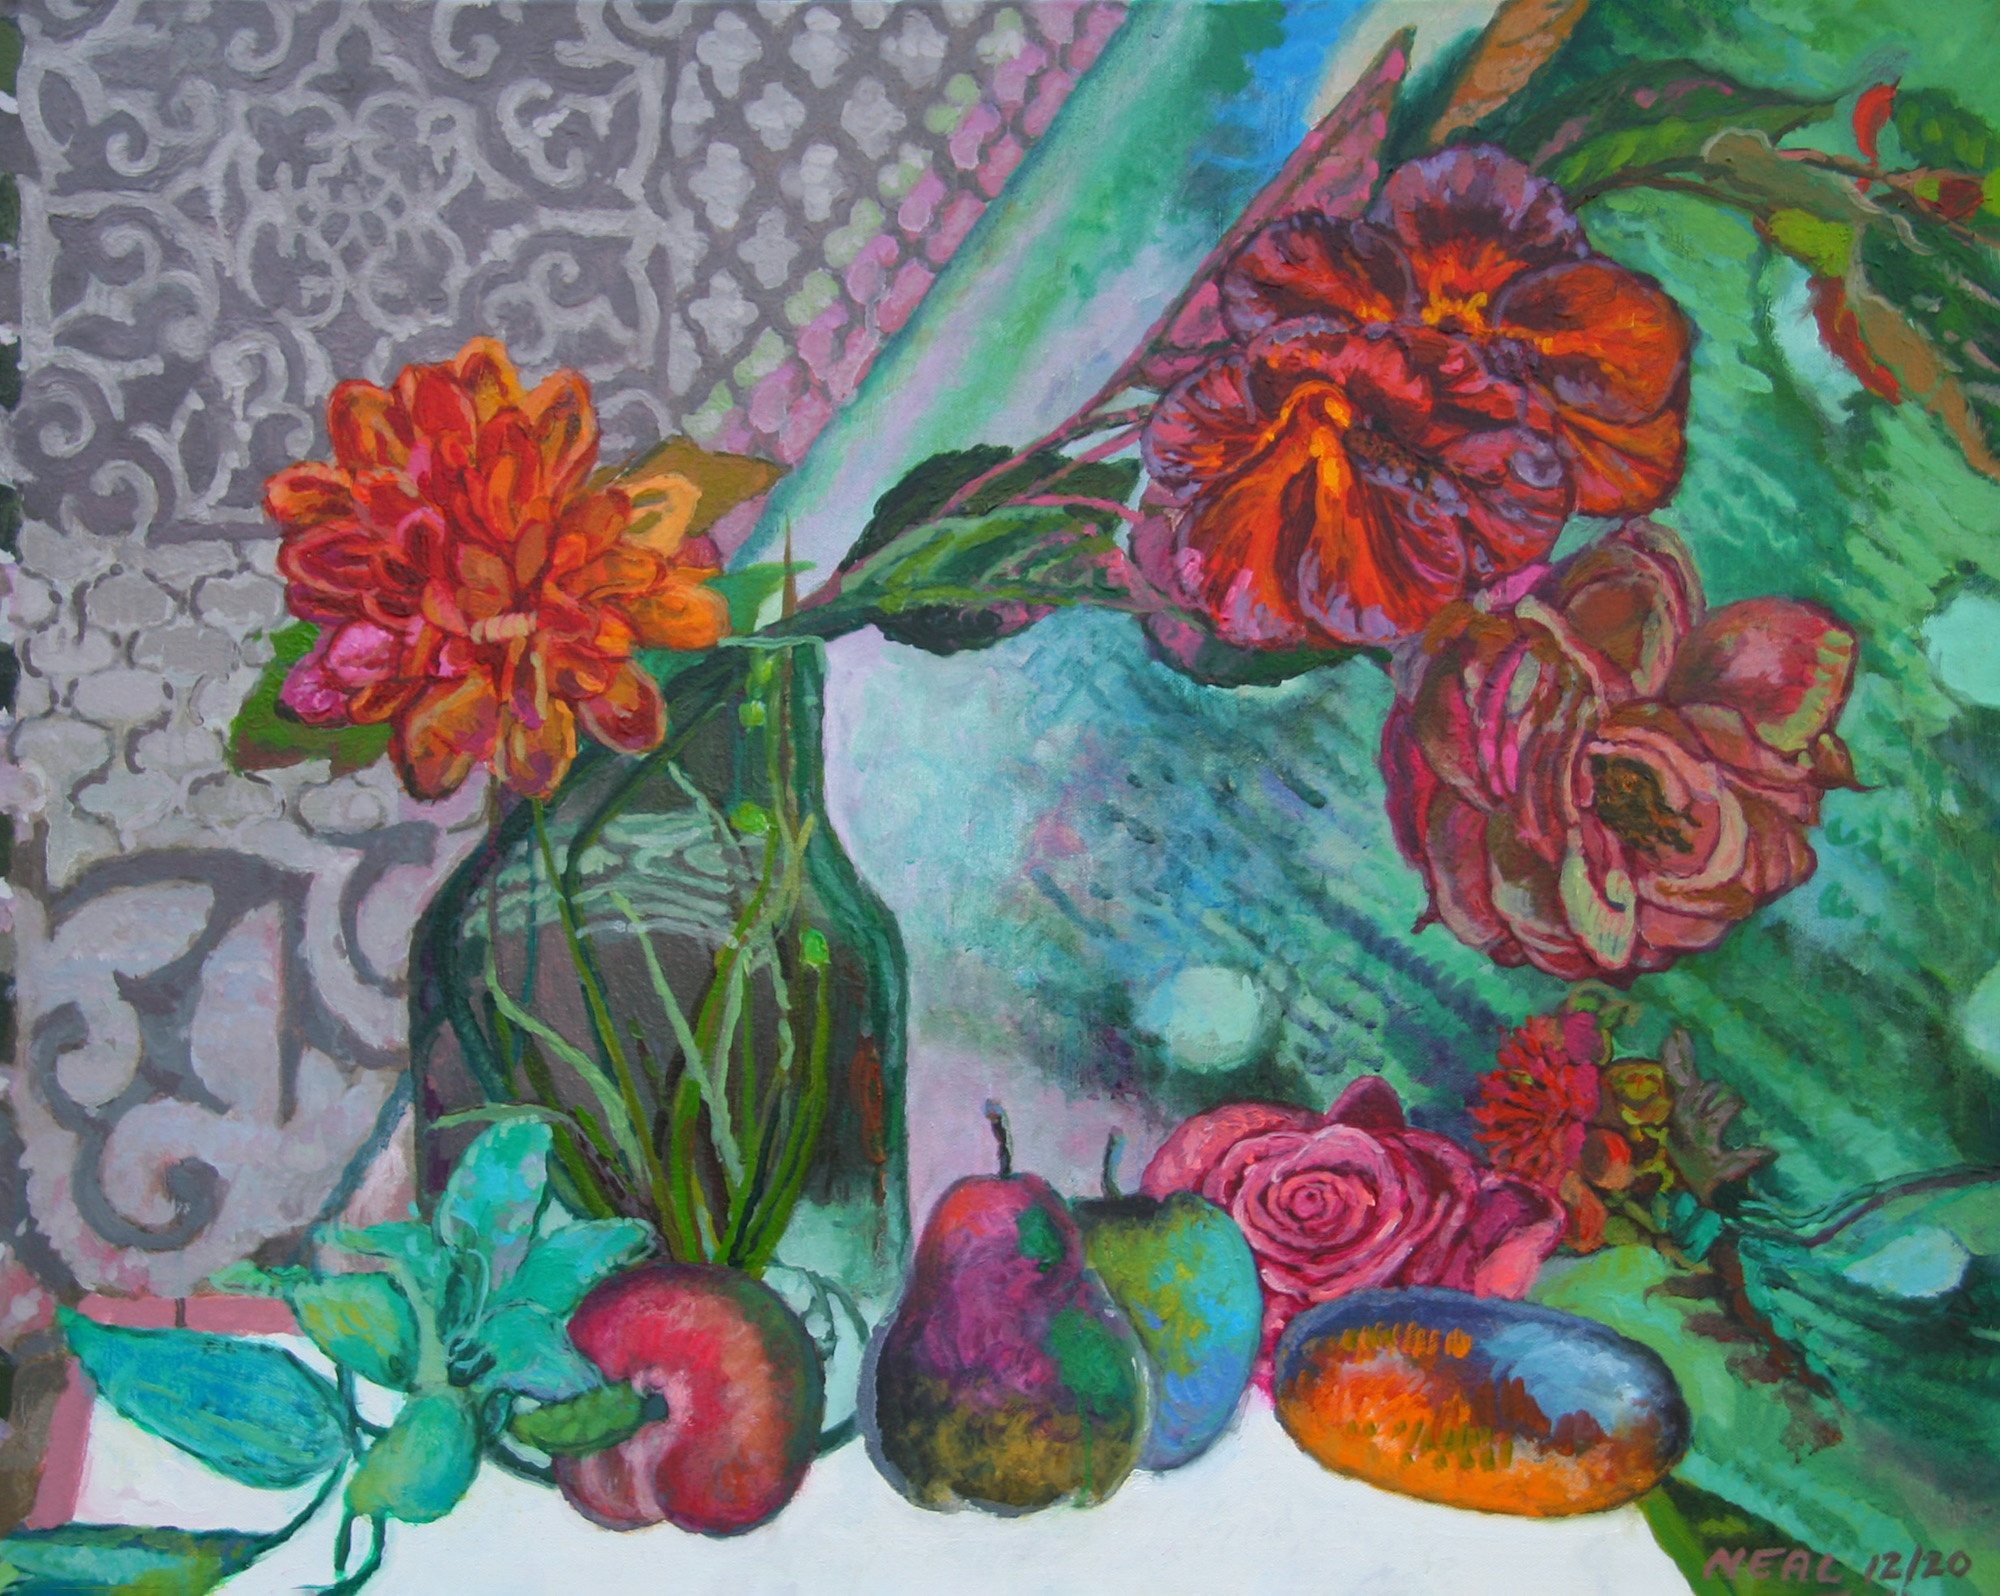 Vivid still life with fruit and flowers and patterns